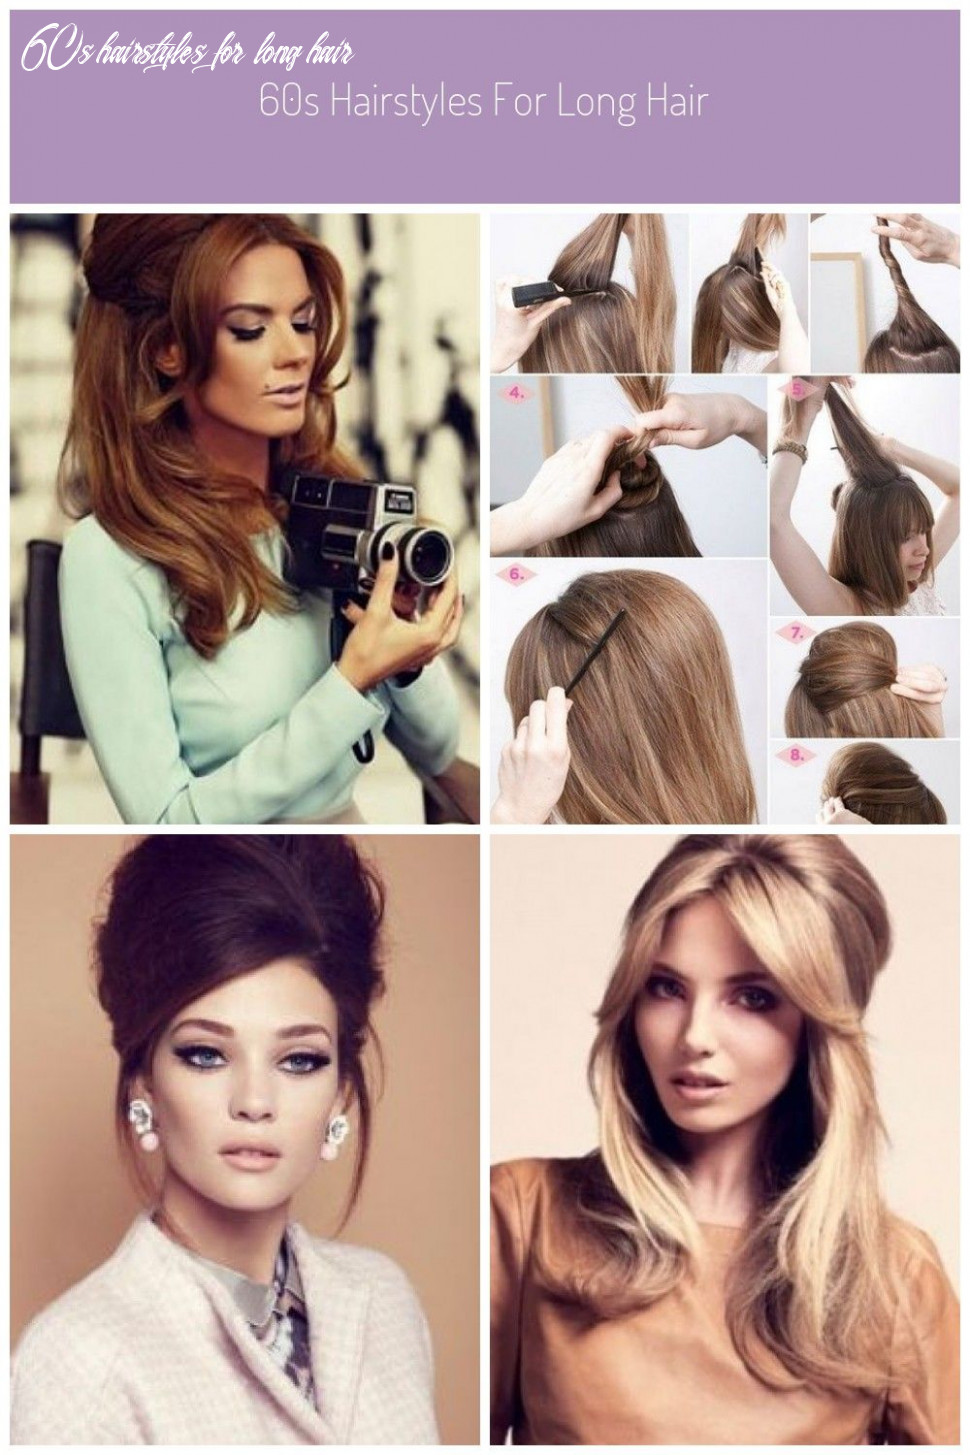 10s hairstyles for long hair   long hair styles 60s hairstyles for long hair